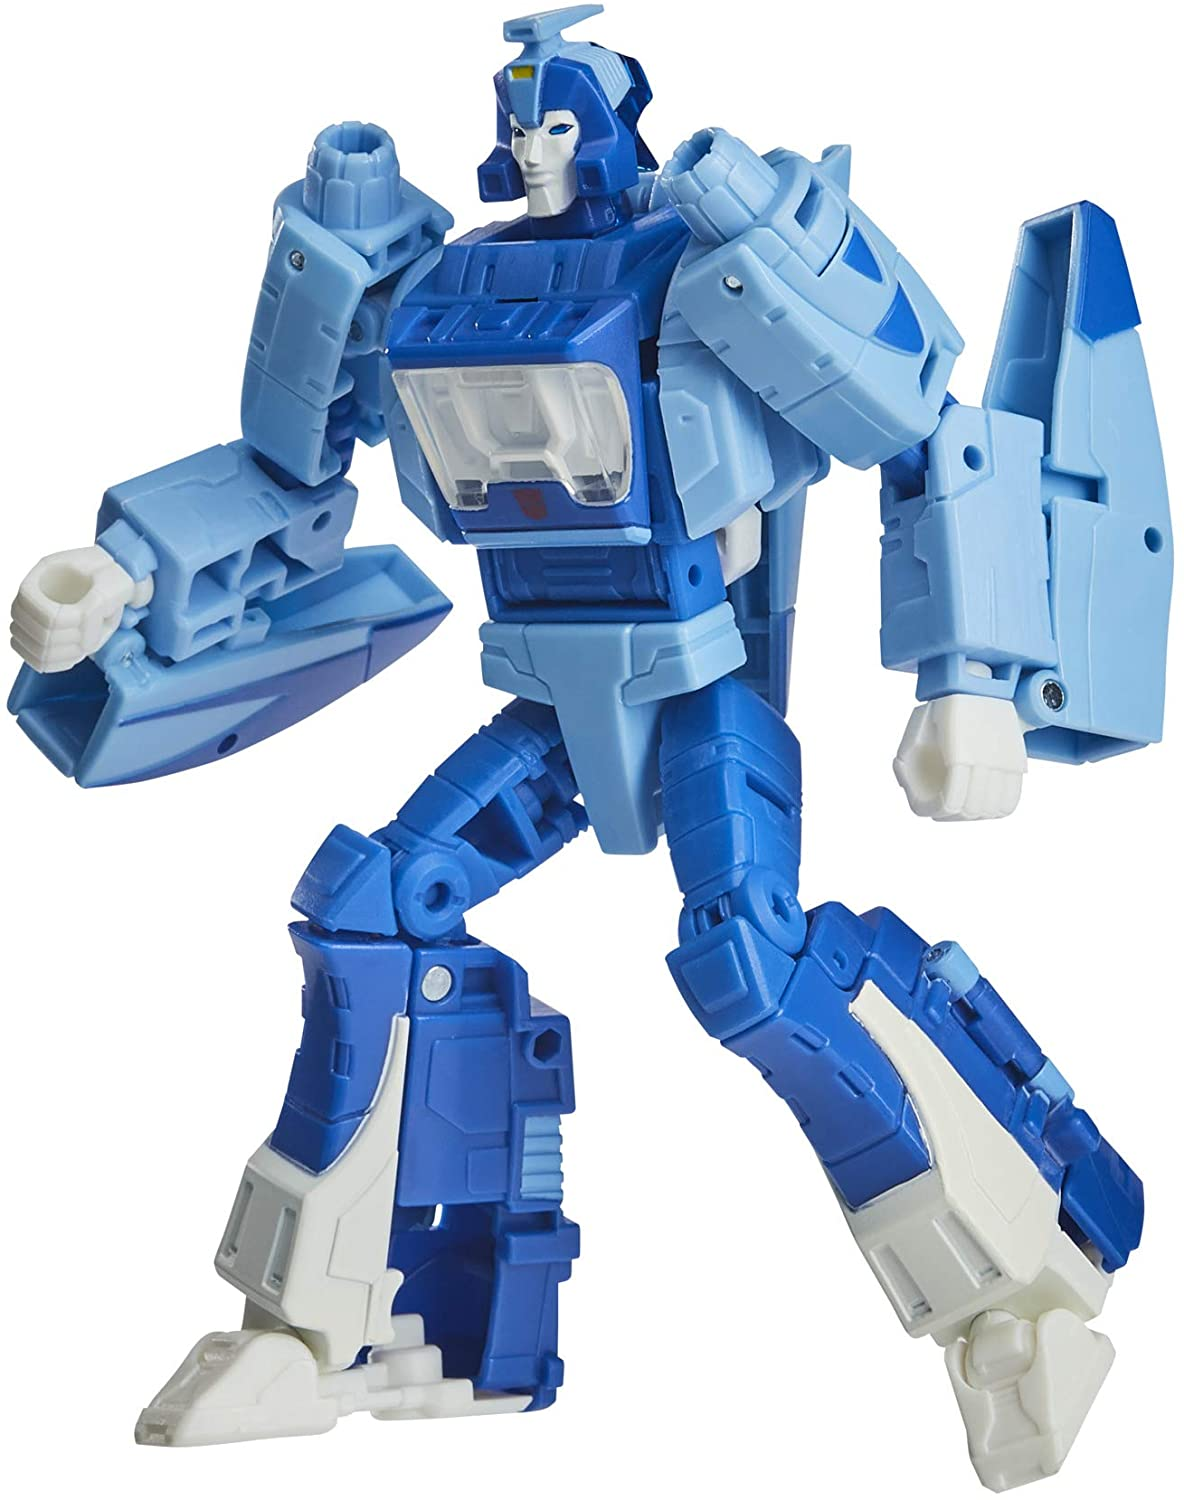 Transformers: Studio Series 86-03 - Transformers The Movie - Deluxe Blurr (F0711)